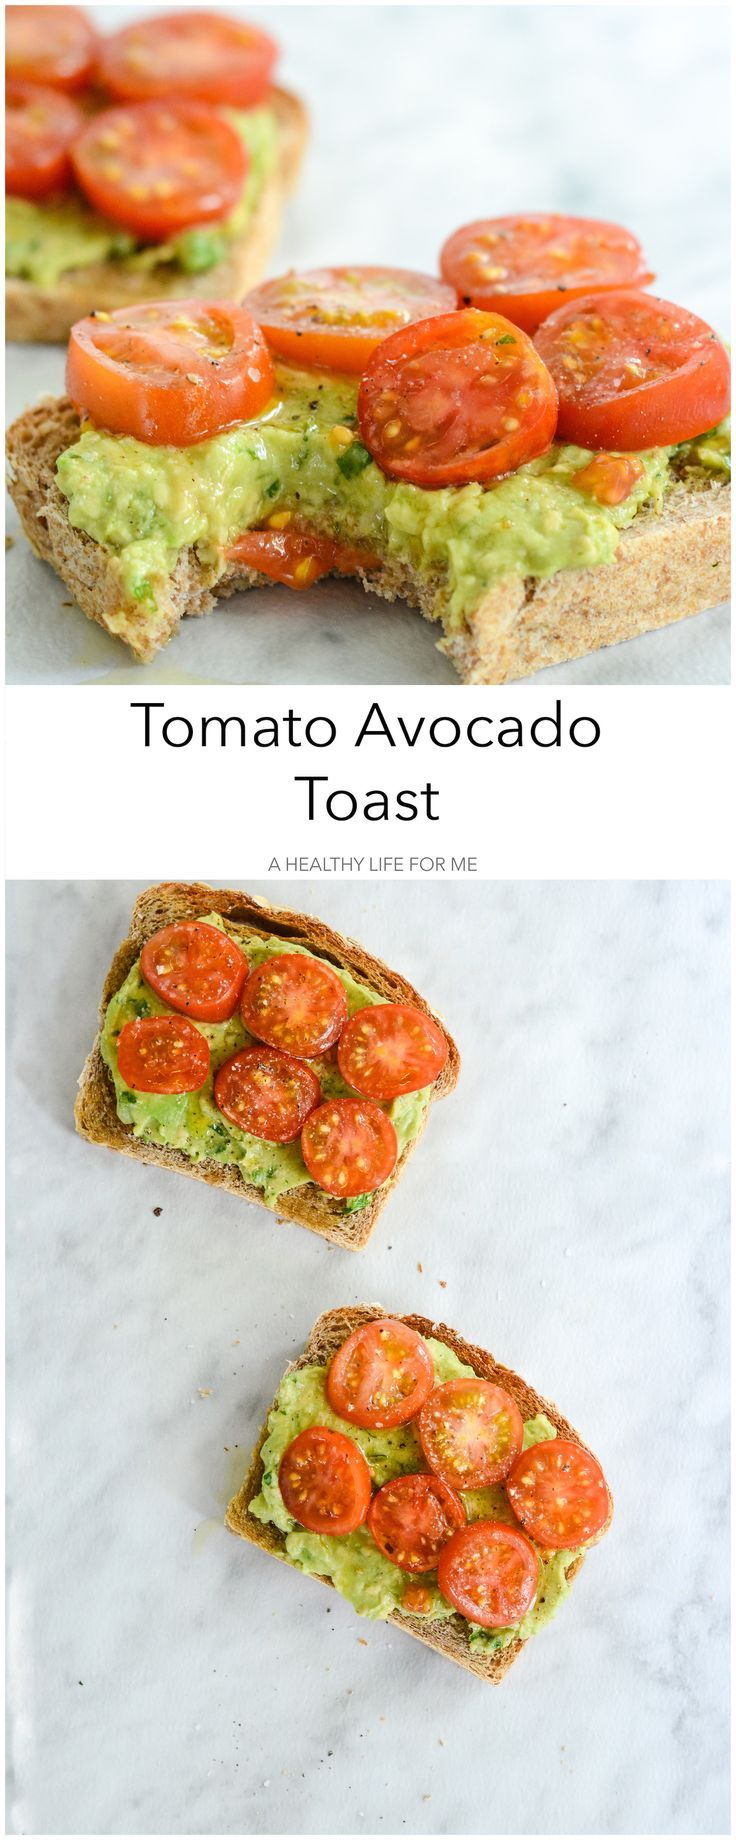 Tomato Avocado Toast - A Healthy Life For Me